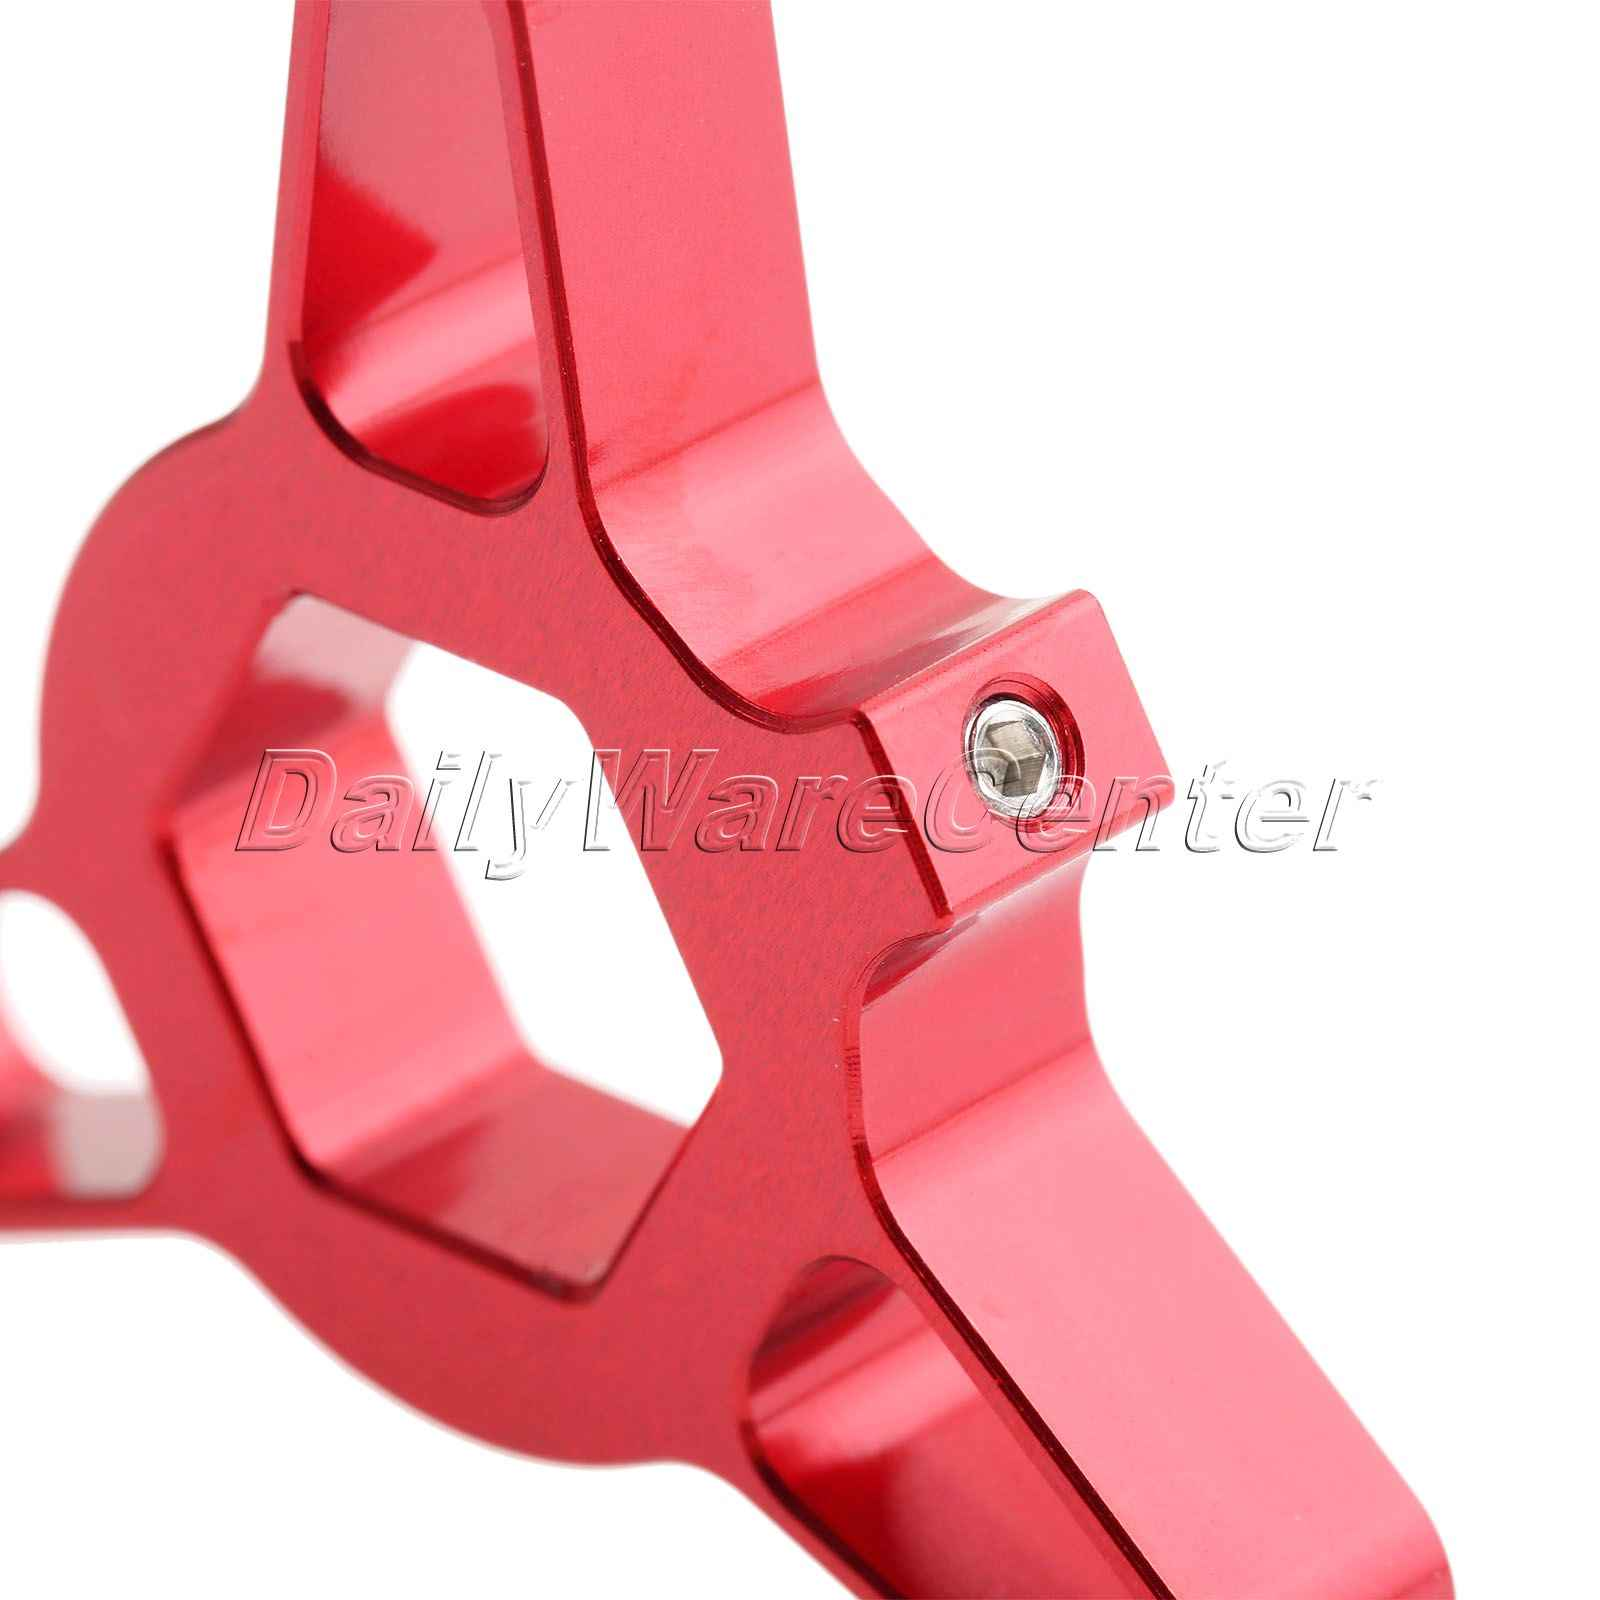 Z750 07-09 ZX10R 04-08 ZX10R 2010 CNC Alloy Suspension Fork Preload Adjusters 14MM Suitable For Kawasaki ZX6R 03-04 ZX6RR 03-04 ZX636R 03-04